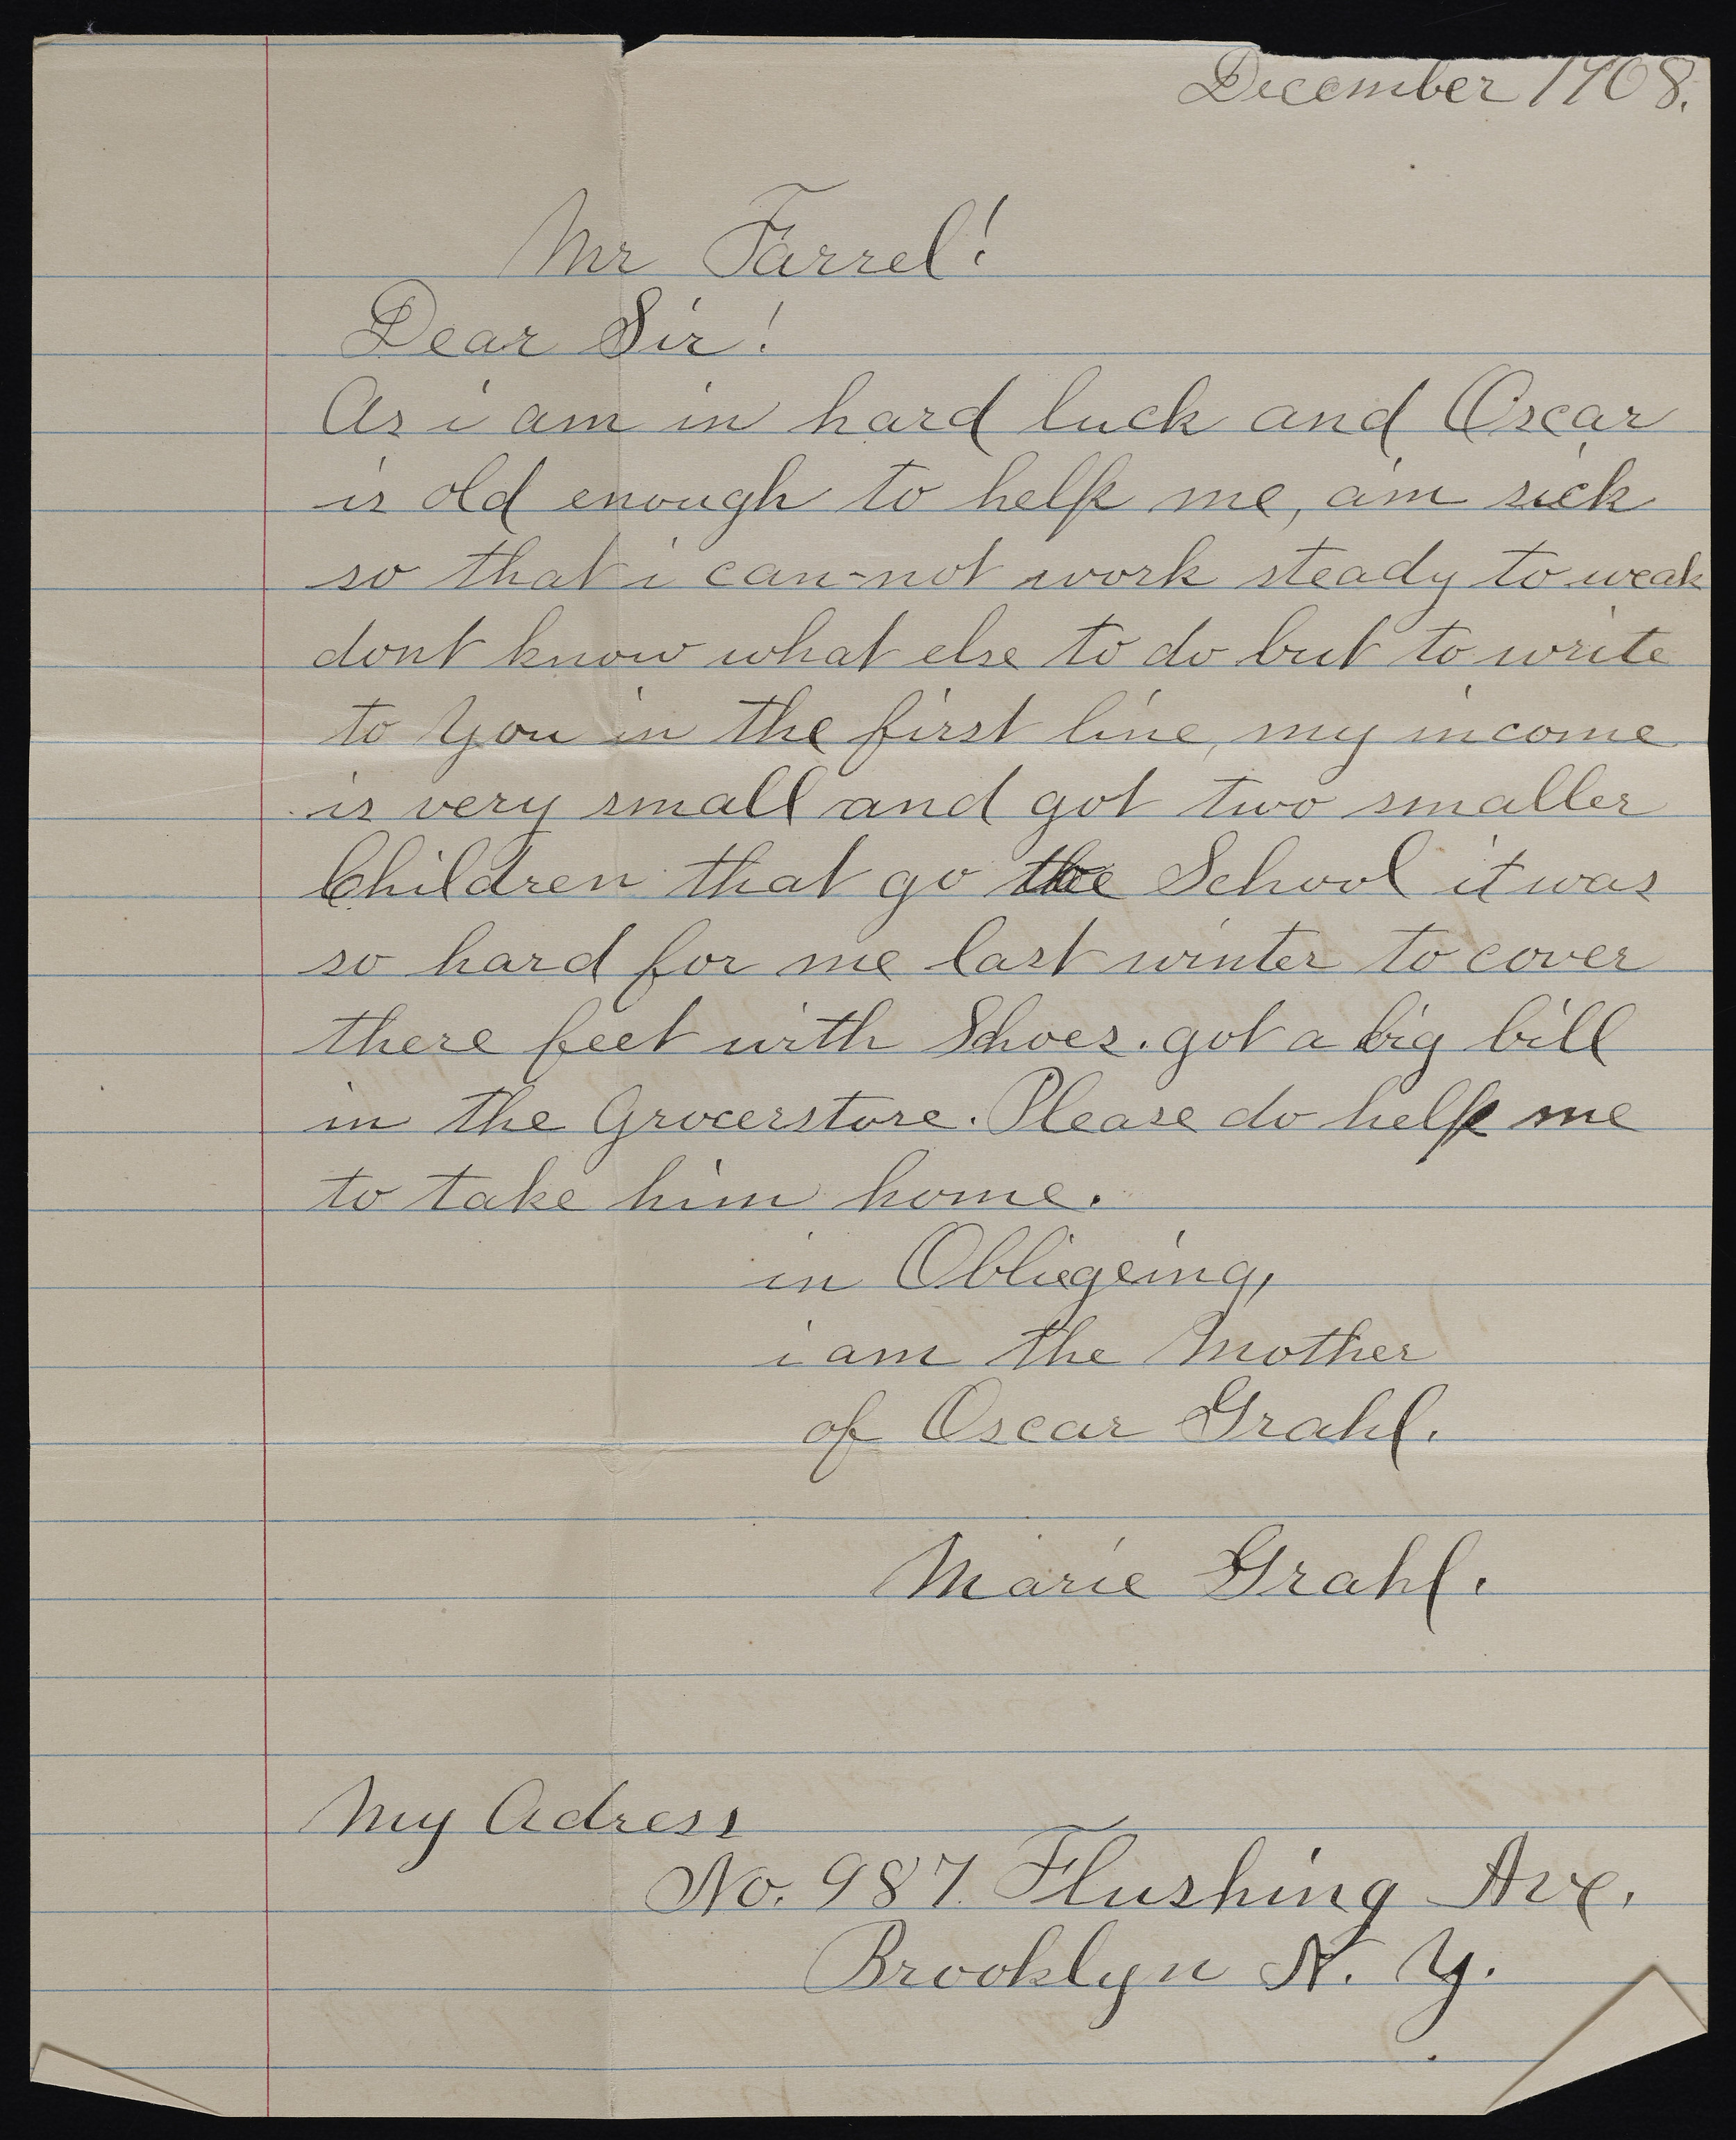 Letter from parent requesting her son's discharge, 1908. Records of the Brooklyn Disciplinary Training School for Boys, NYC Municipal Archives.